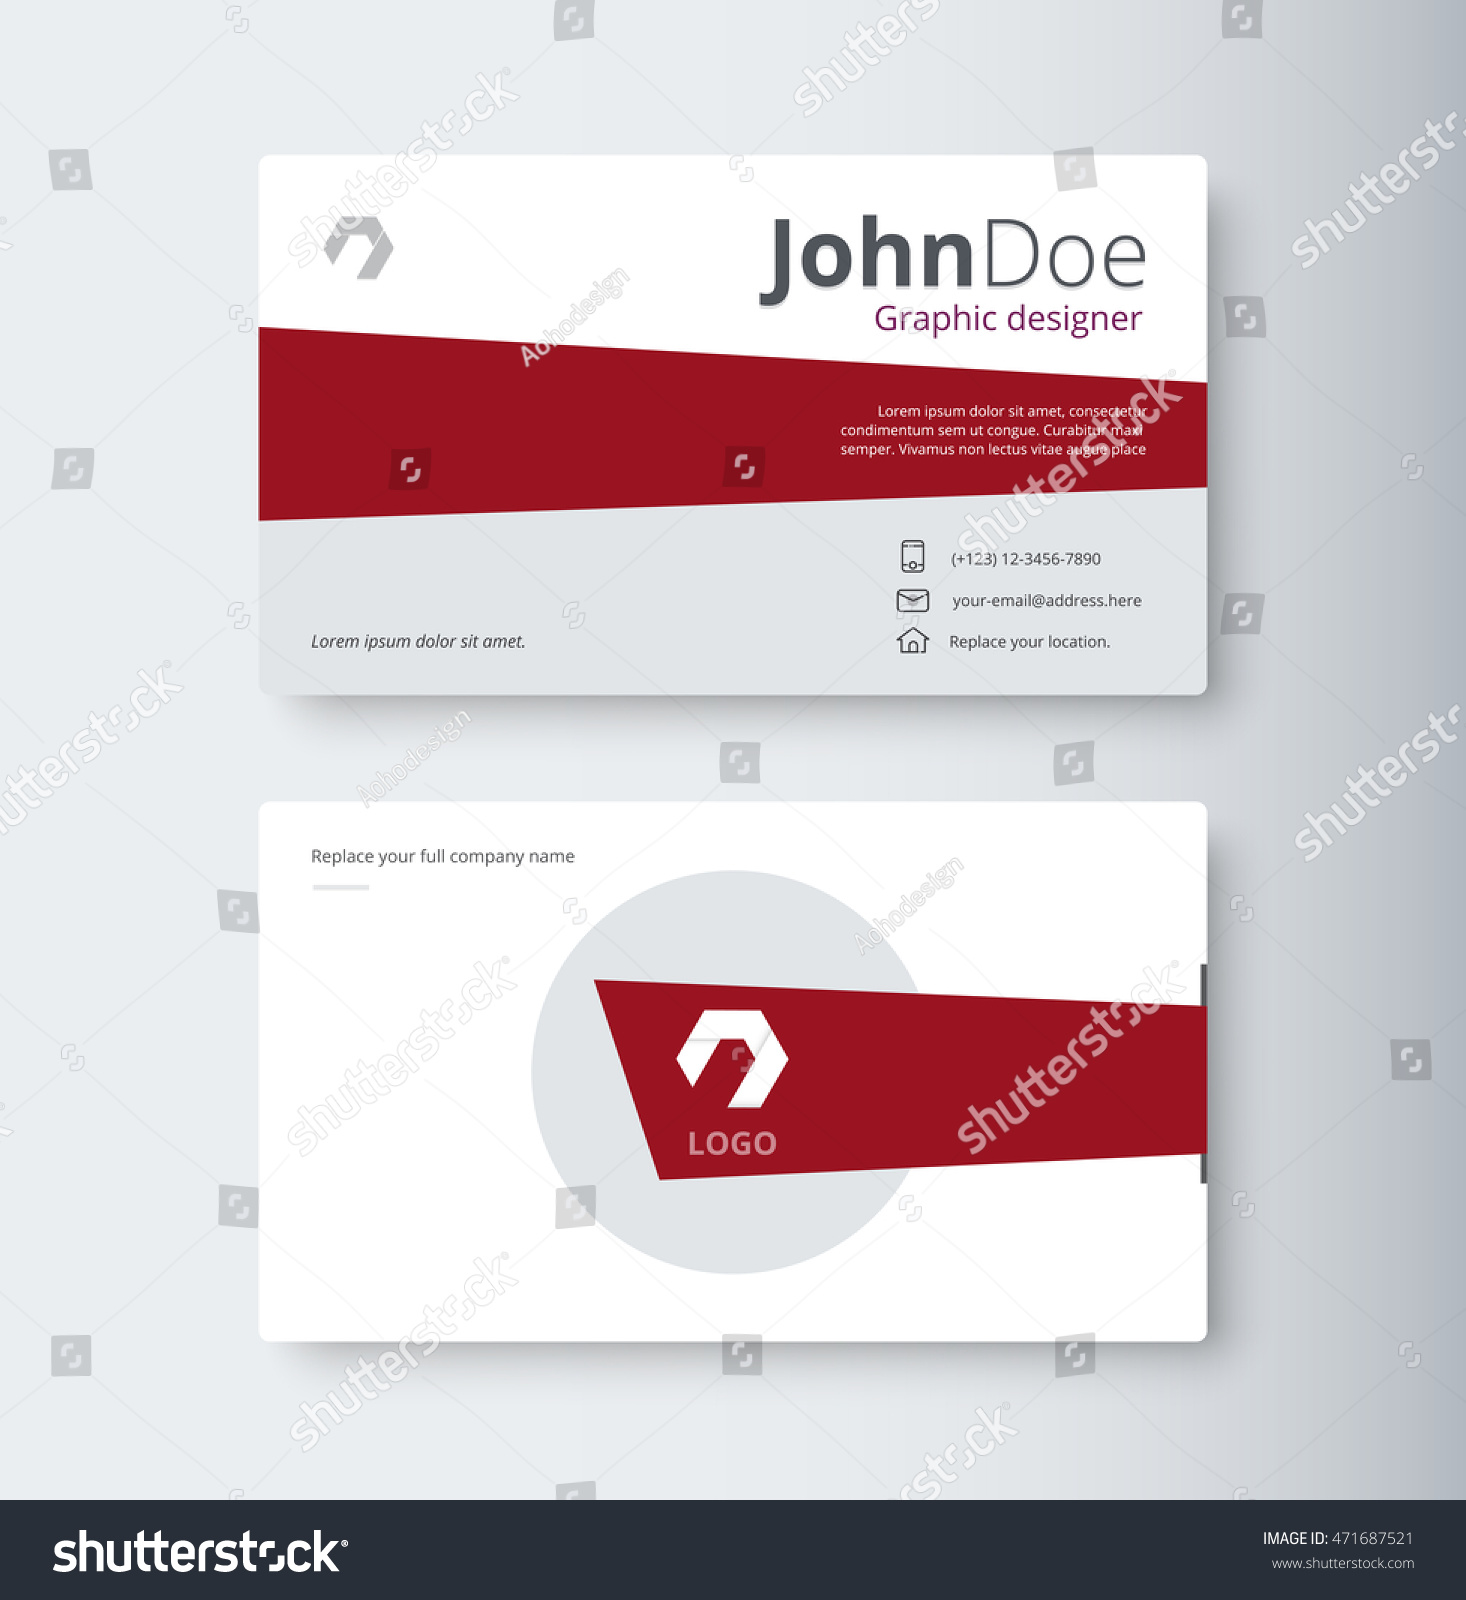 business contact card template design vector stock vector 471687521 shutterstock. Black Bedroom Furniture Sets. Home Design Ideas